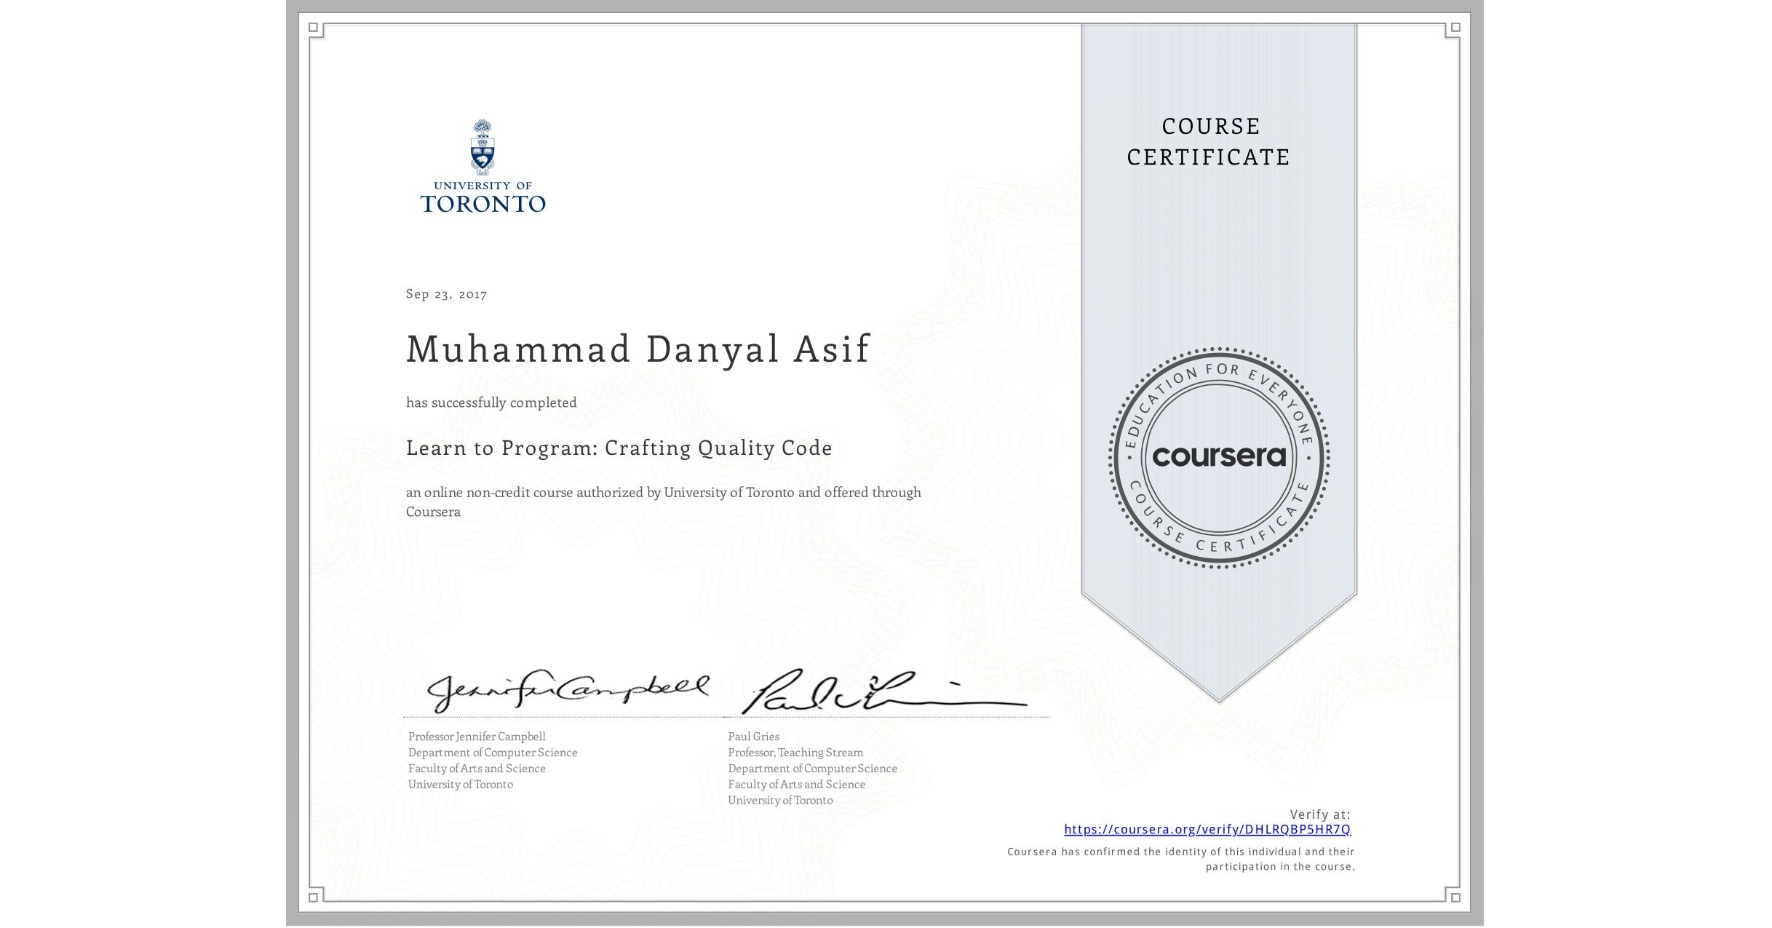 View certificate for Muhammad Danyal  Asif, Learn to Program: Crafting Quality Code, an online non-credit course authorized by University of Toronto and offered through Coursera